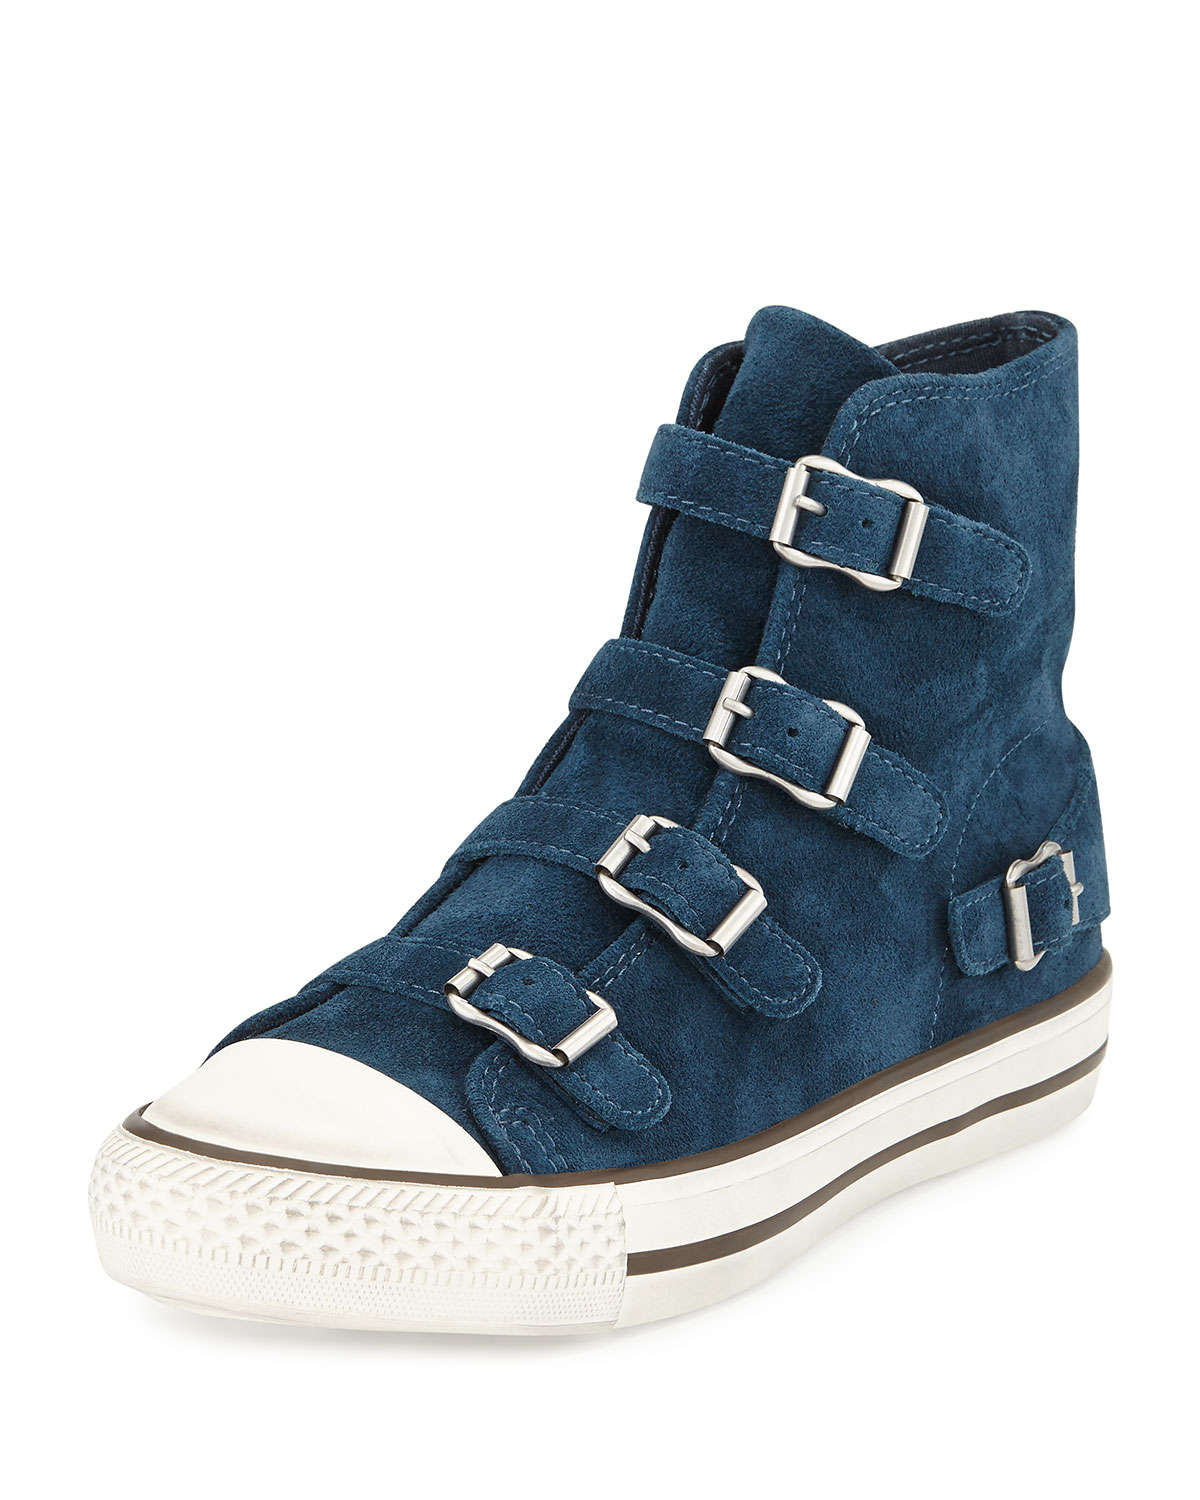 lyst ash virgin buckled suede high top sneakers in blue. Black Bedroom Furniture Sets. Home Design Ideas